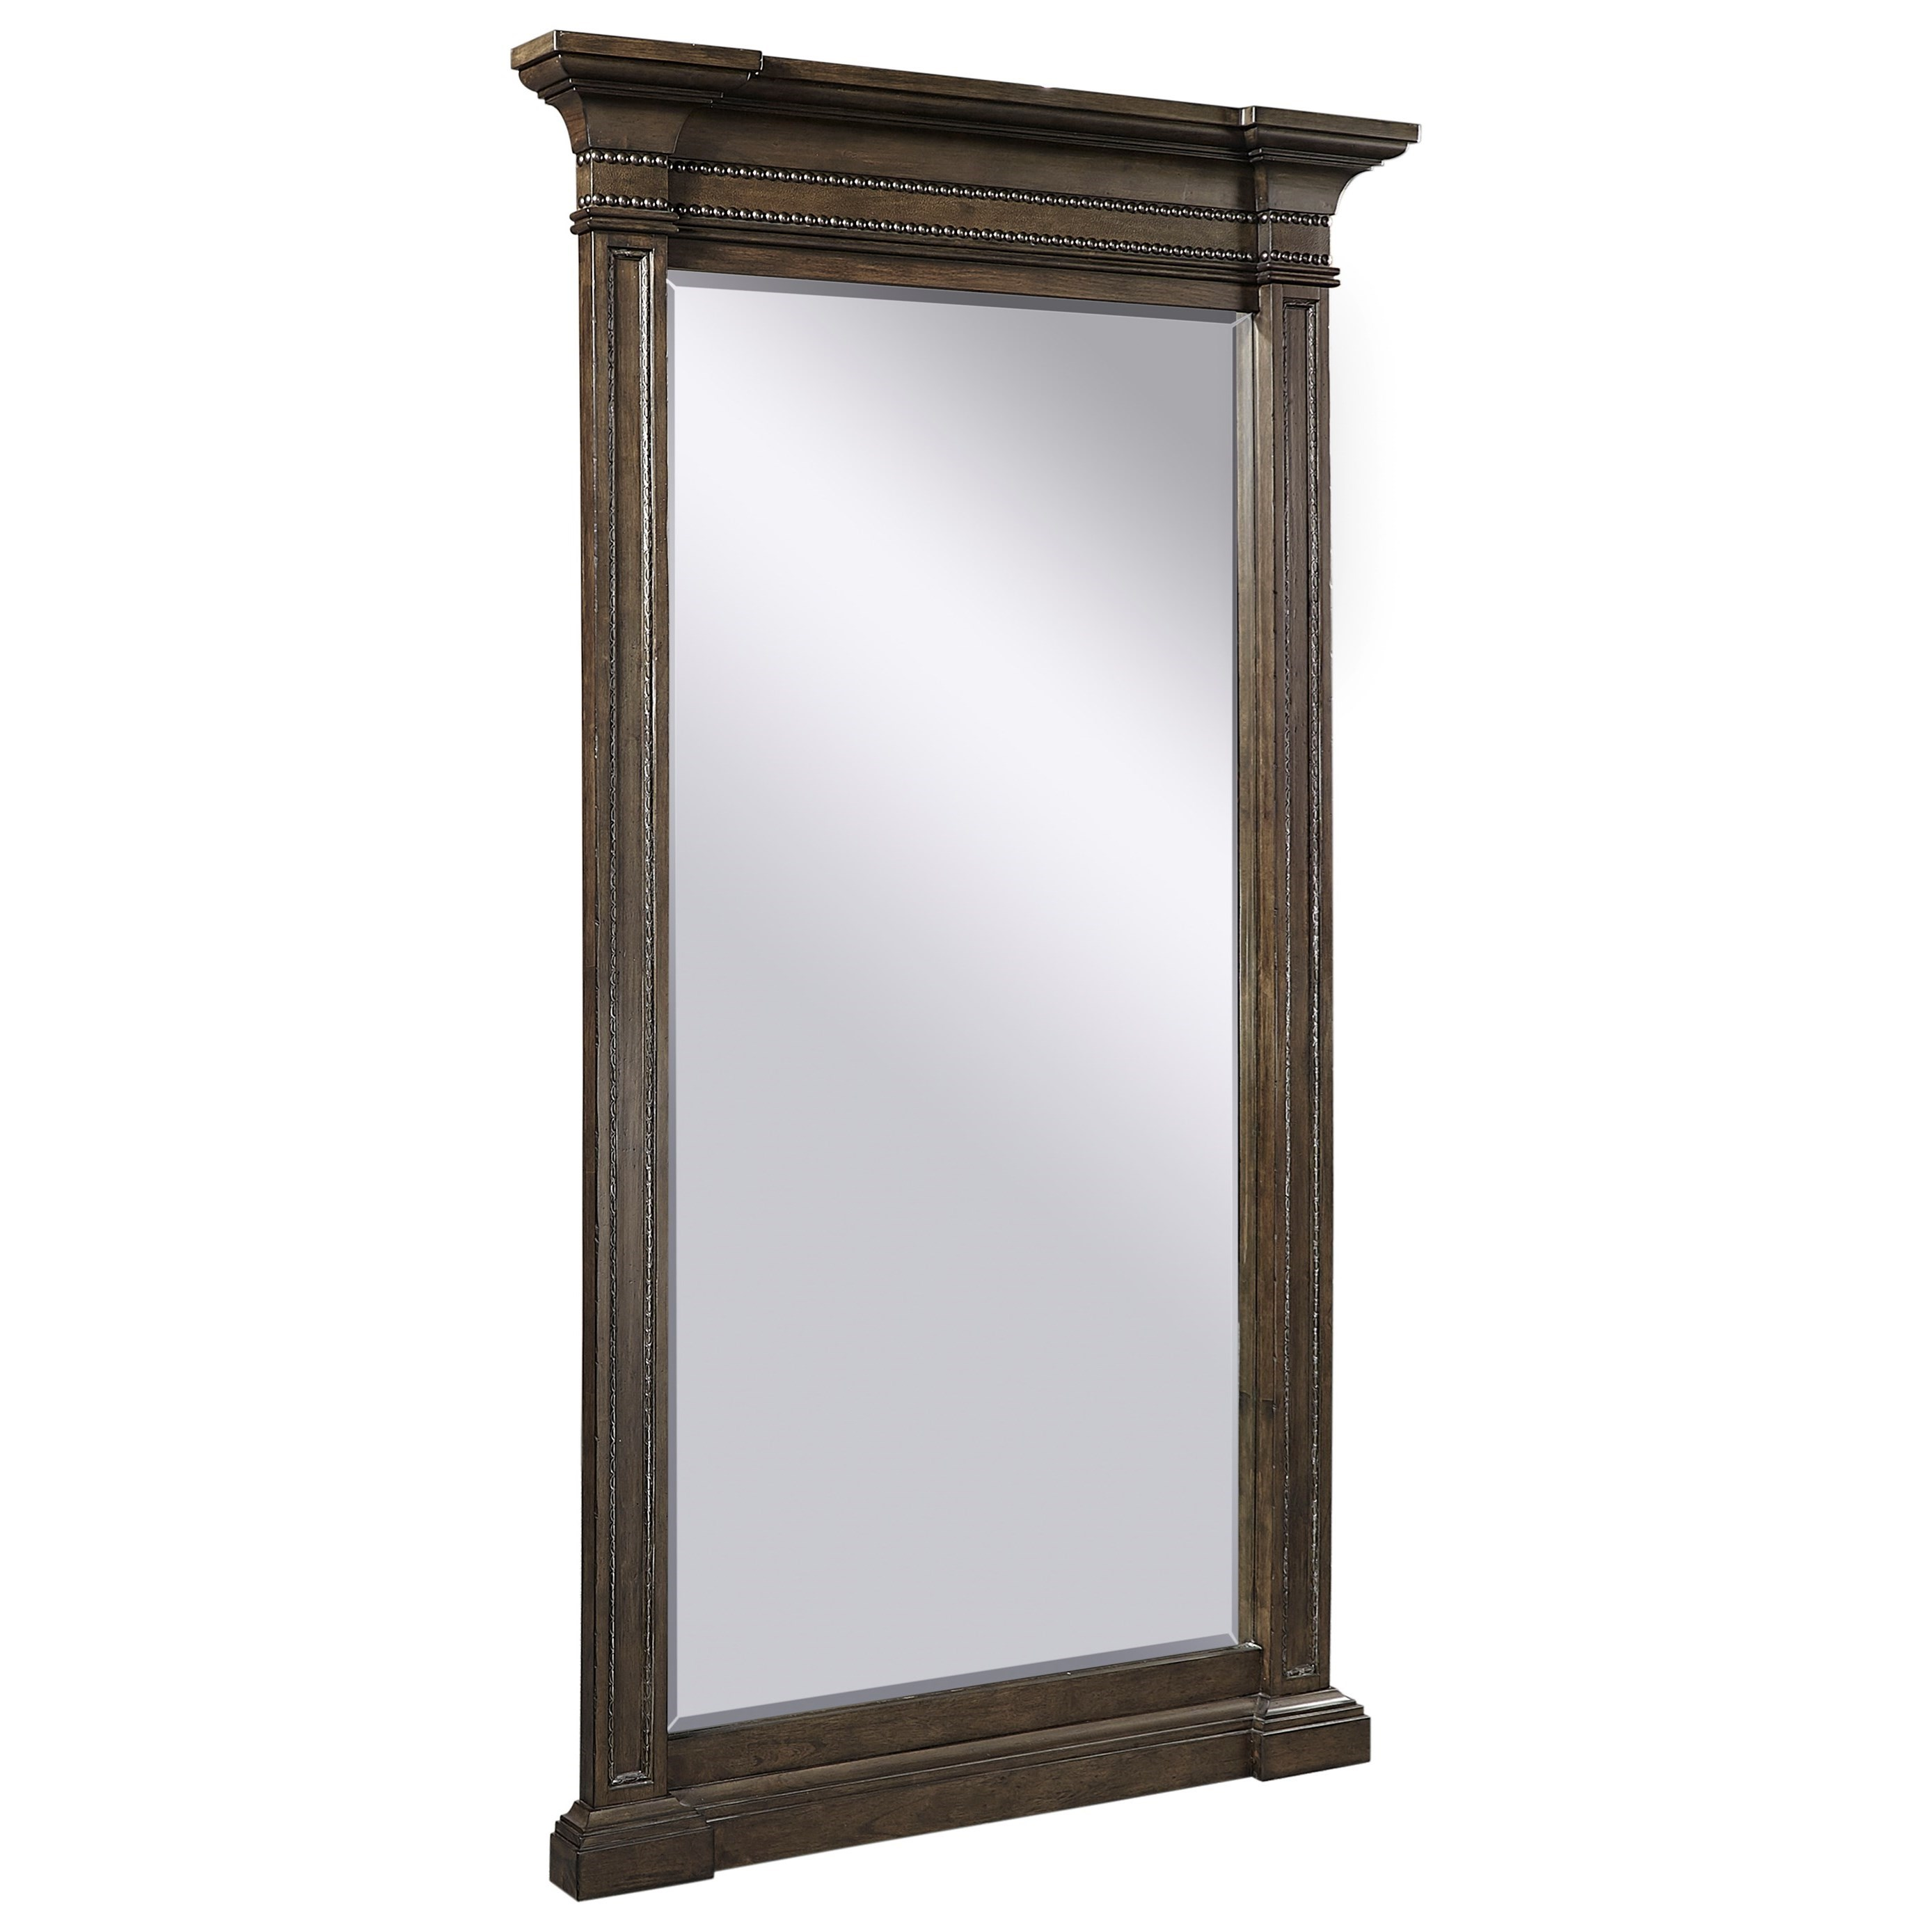 Traditional Floor Mirror with Crown Molding and Nails